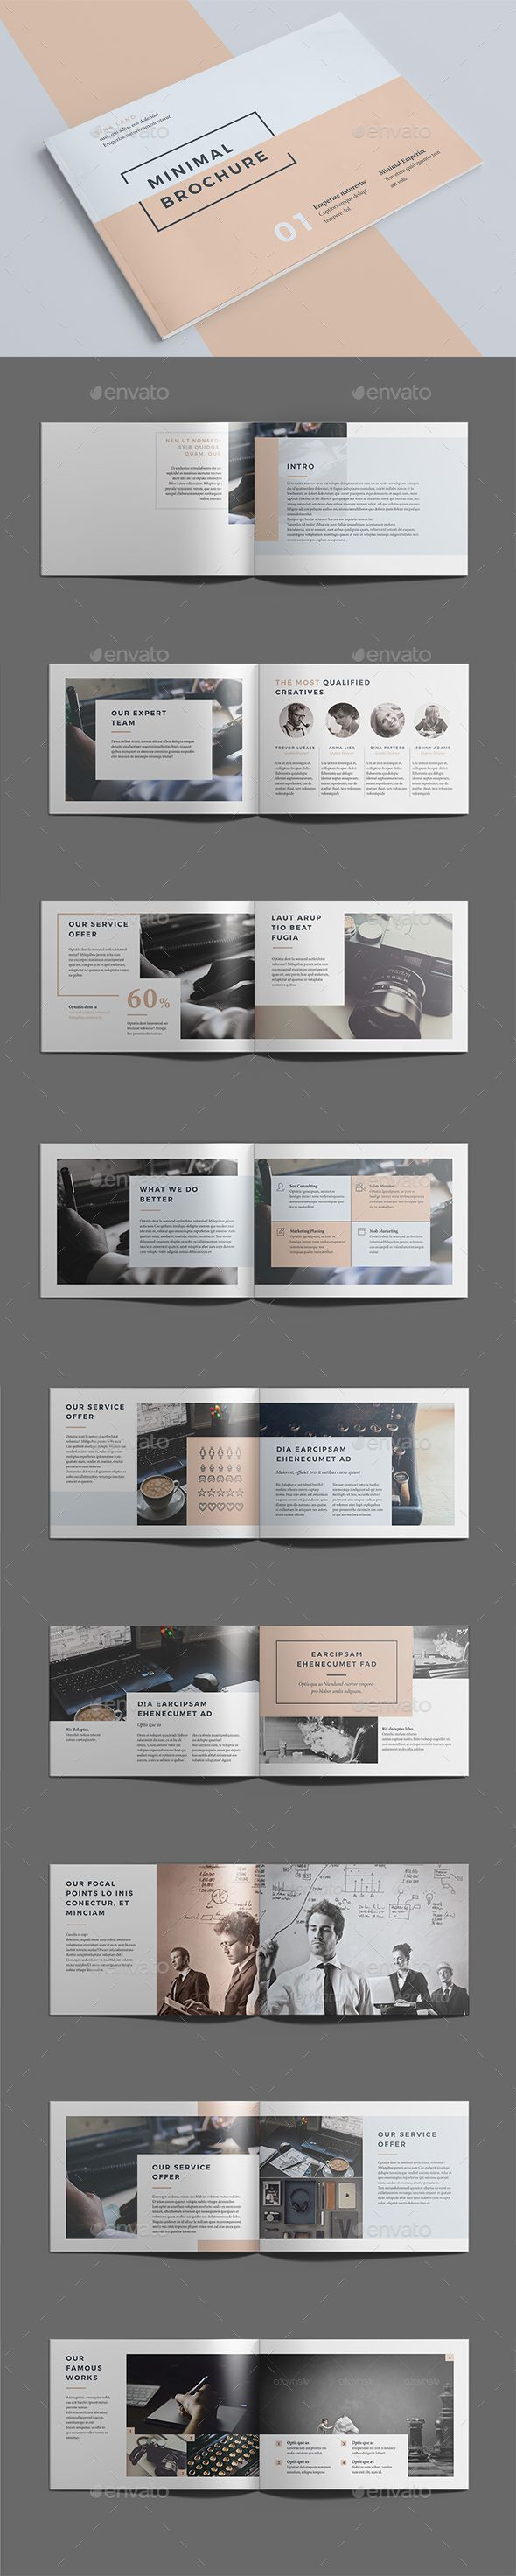 Minimal Brochure Template InDesign INDD. Download here: graphicriver.net/…